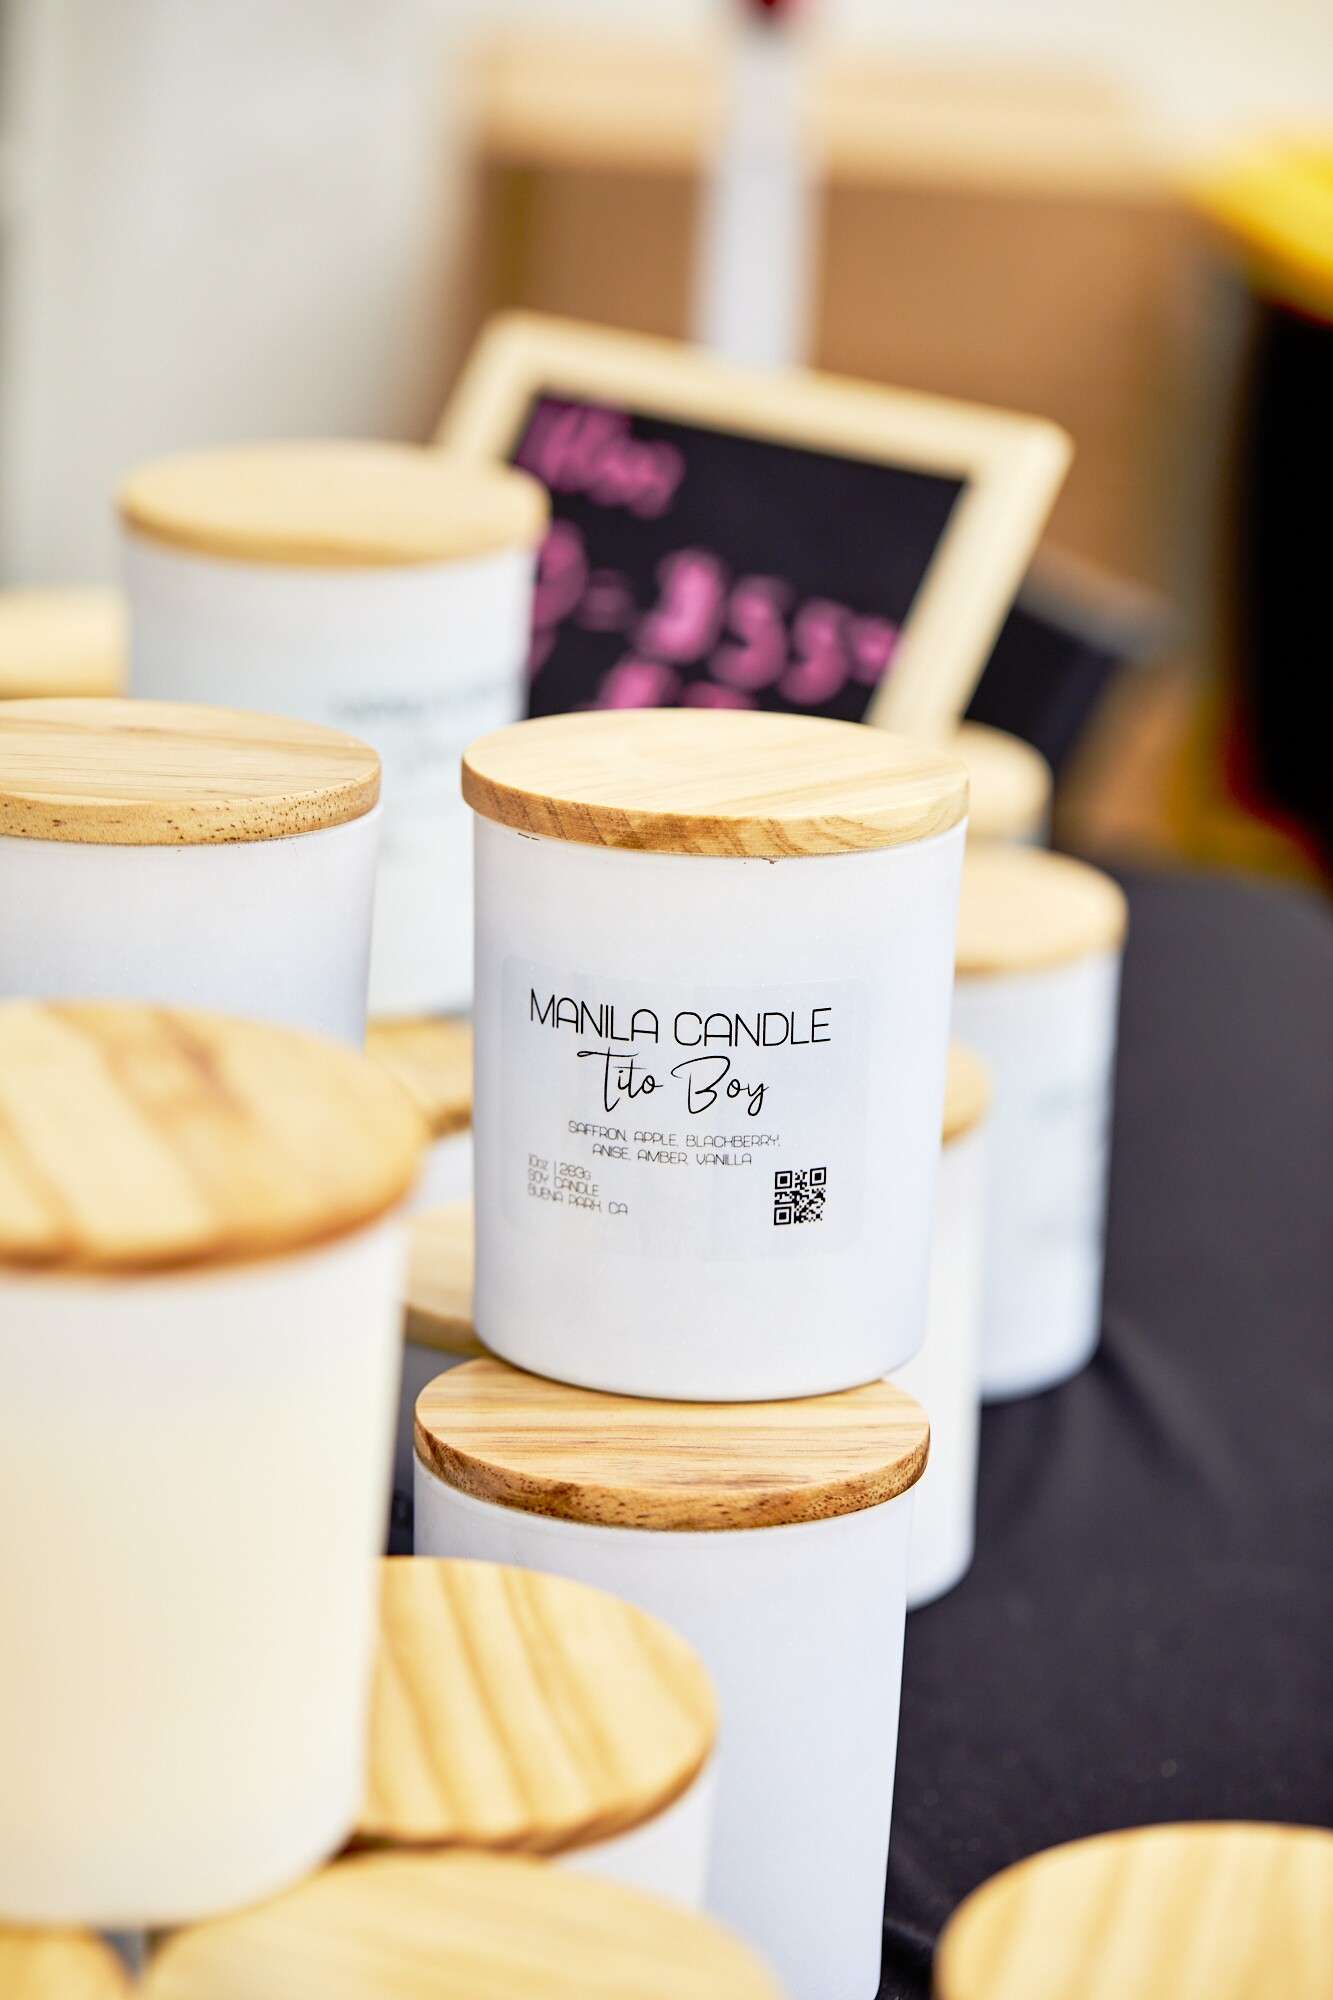 """The Tito Boy candle sits at the Manila Candle booth at the FilLed Market in Downtown L.A.  The candle body is white and reads, """"Manila Candle, Tito Boy"""" in black print. The candle lid is a light-colored wood."""